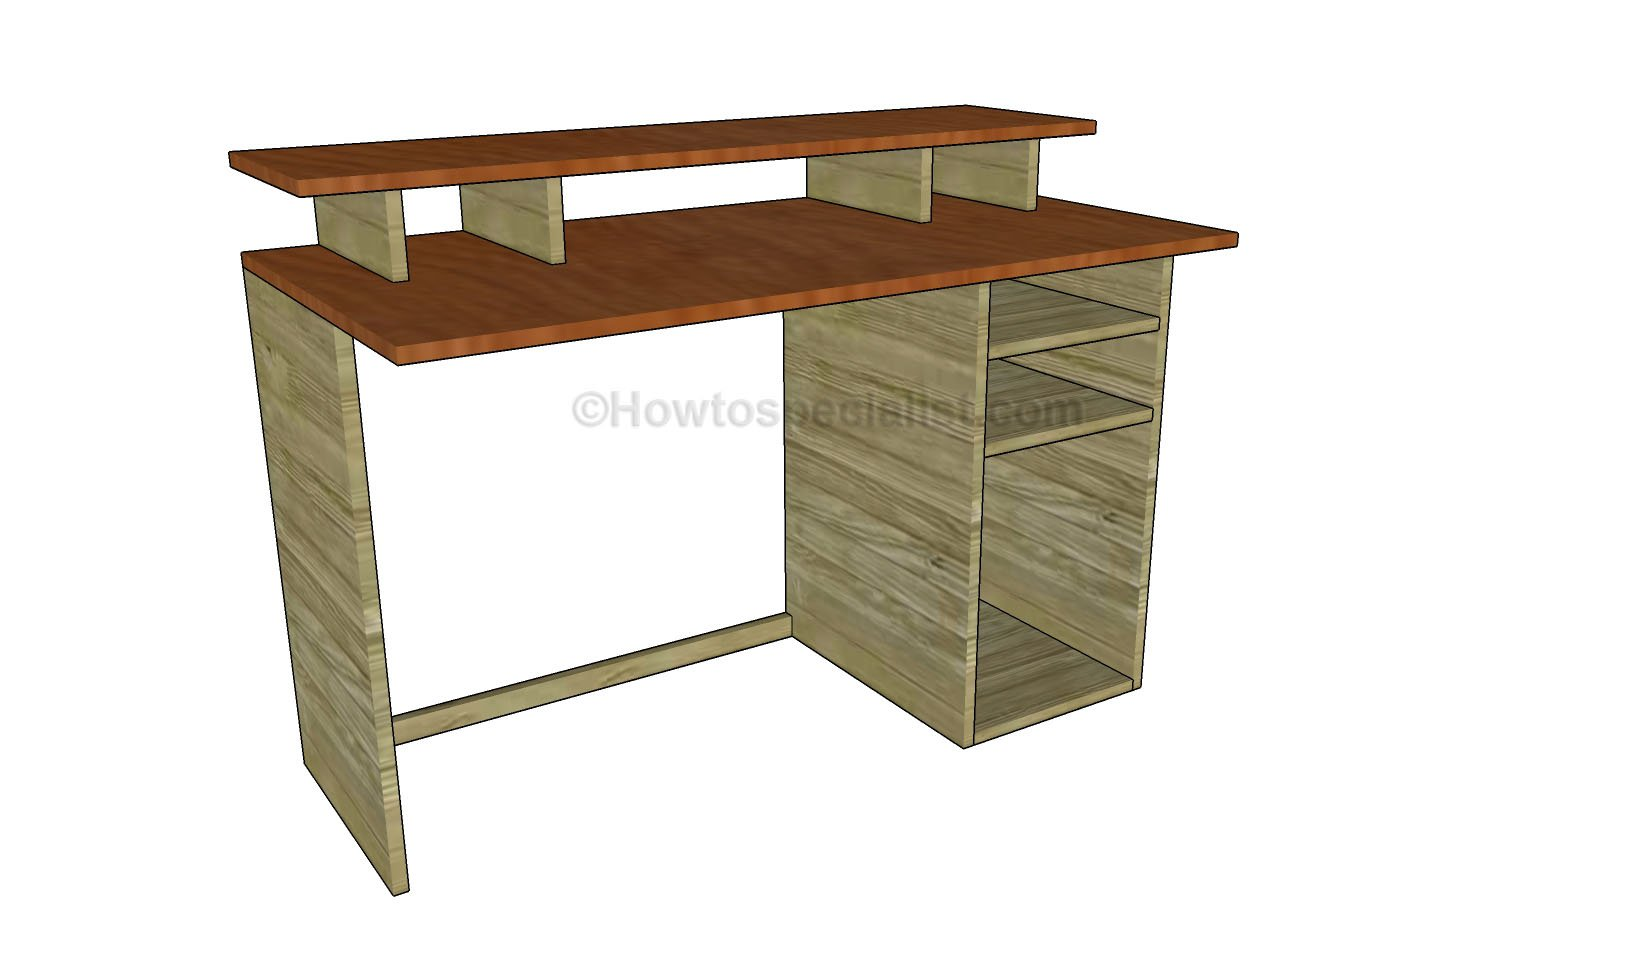 build a desk plans | Quick Woodworking Projects